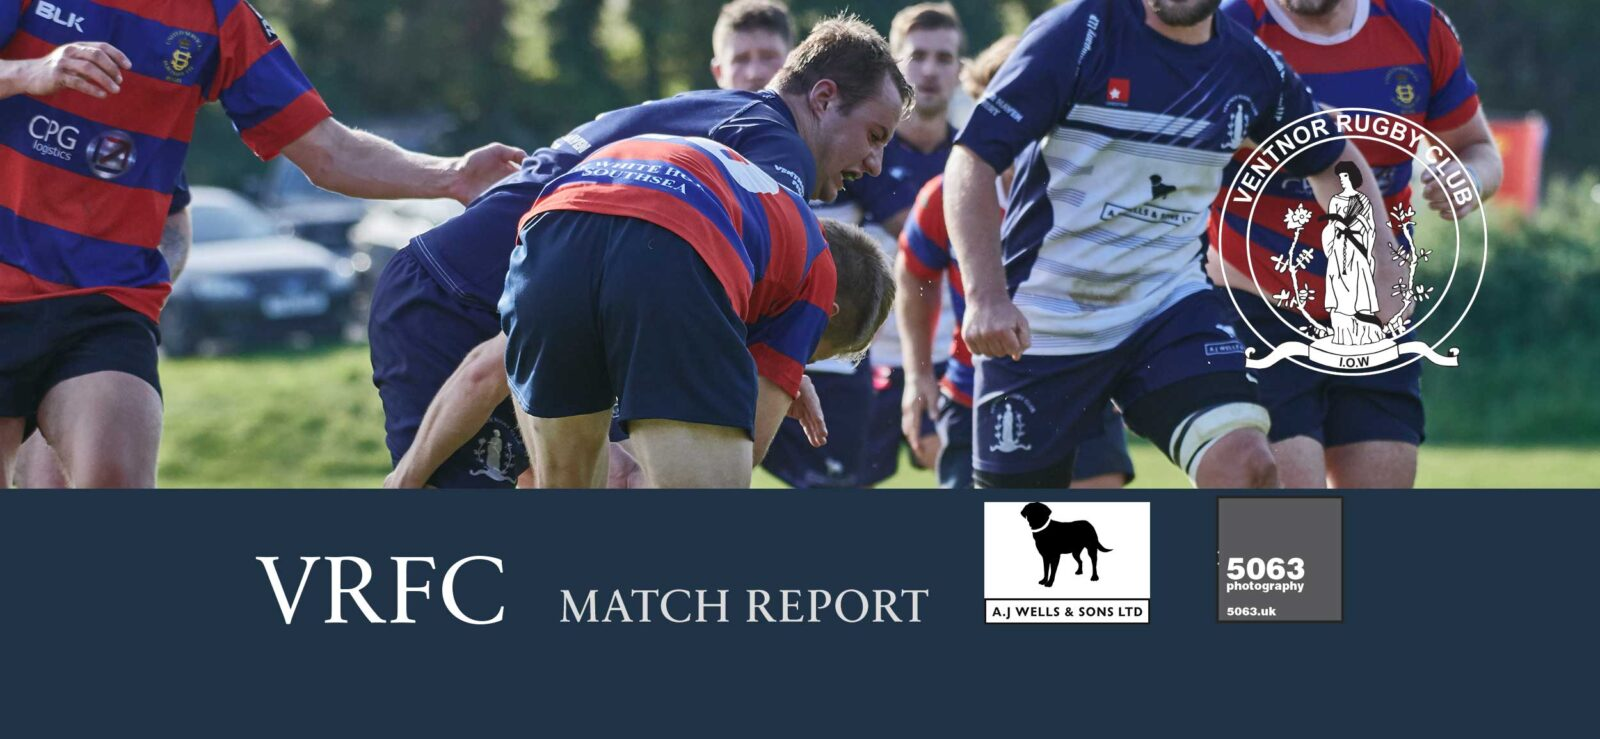 Match-report-Ventnor-RFC-1st-XV-v-United-Services-Portsmouth-23092017-slider-a